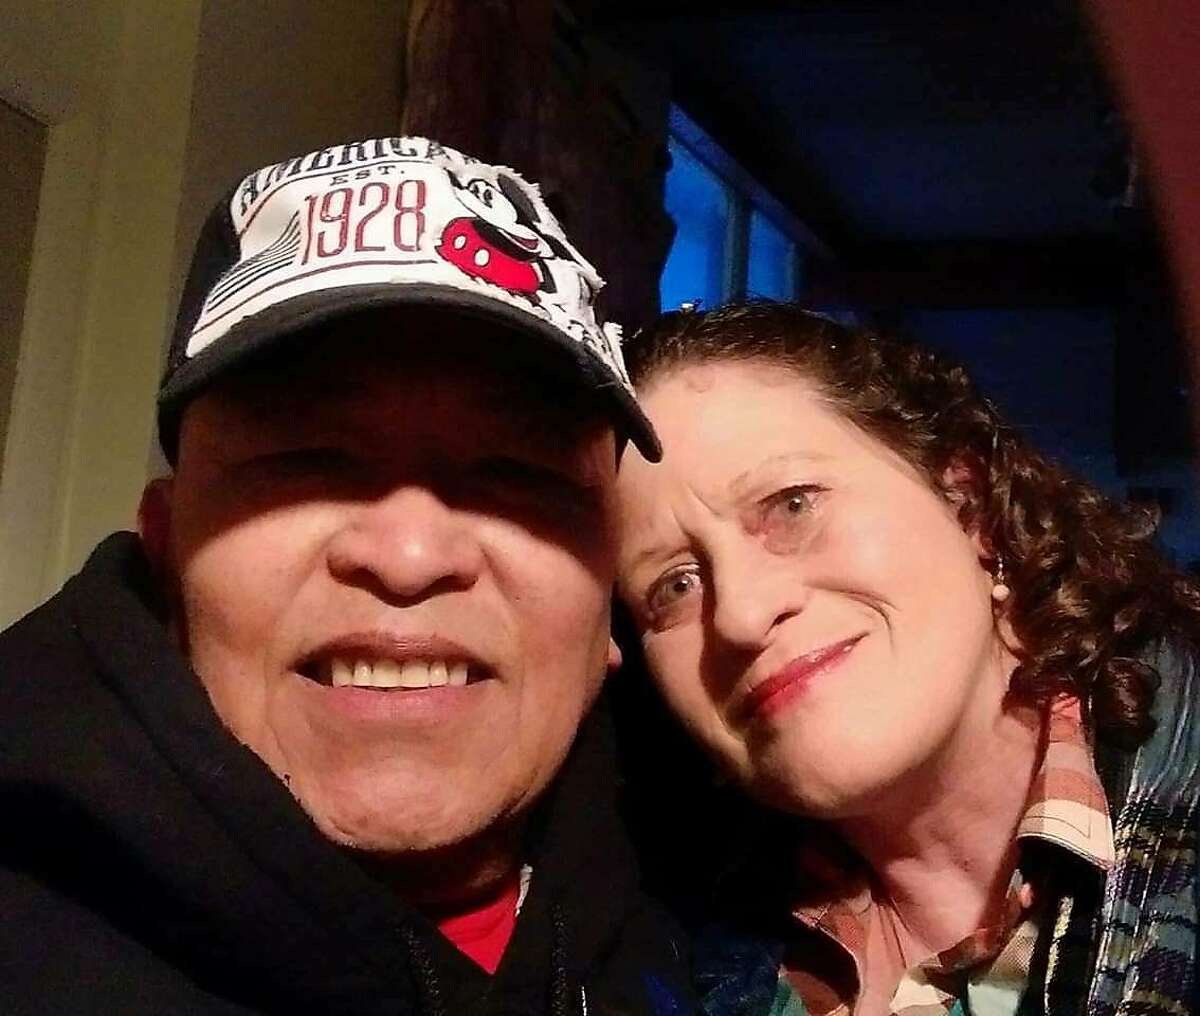 Rick and Lolene Rios are pictured together before the Camp Fire destroyed their home in Paradise. Rick suffered severe burns in the fire. Lolene is missing.